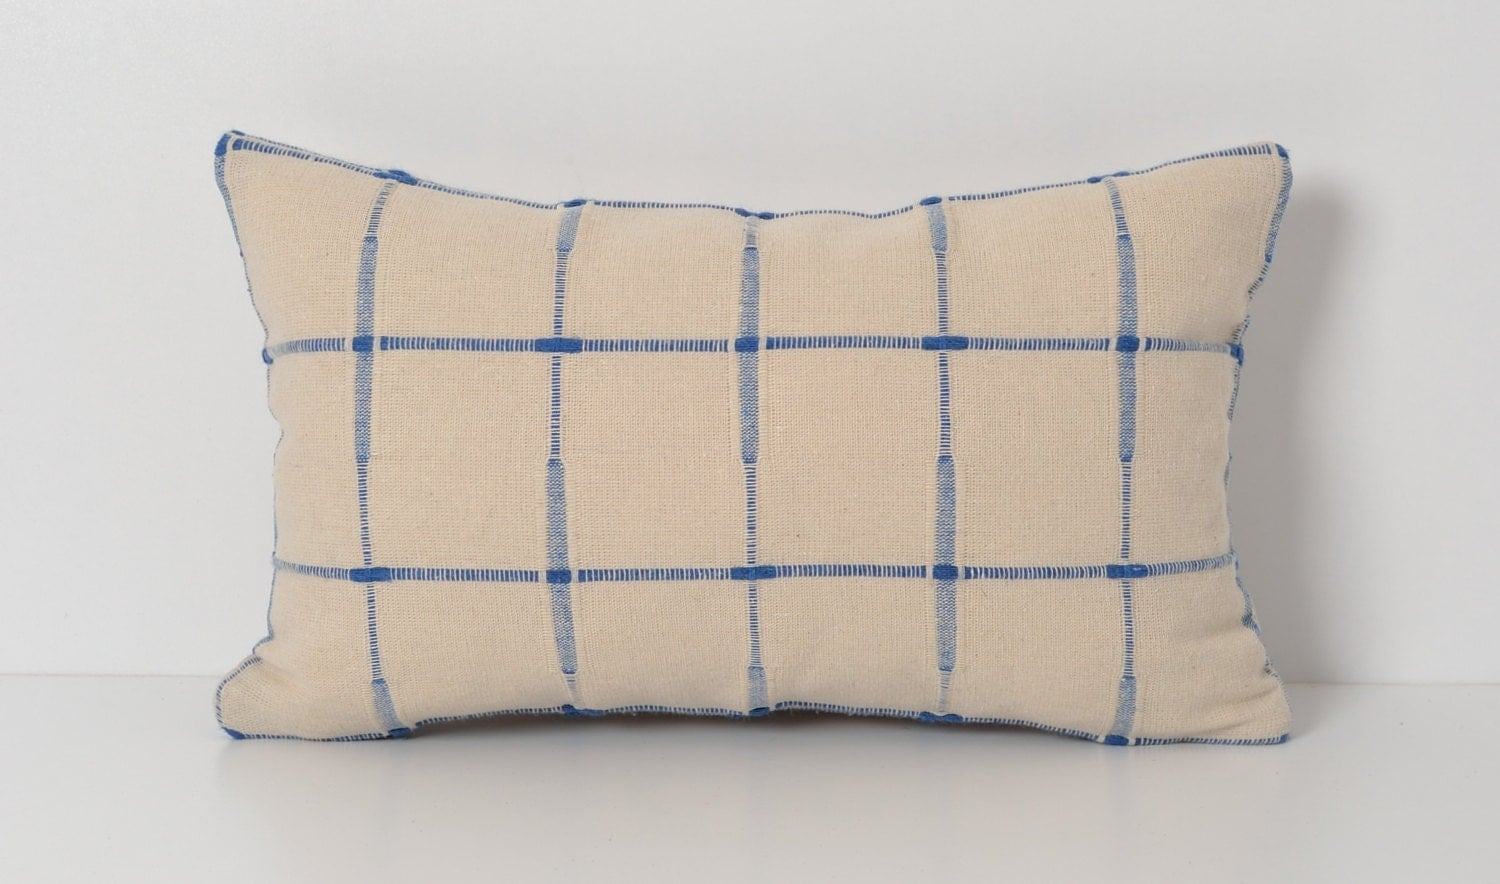 Decorative Plaid Pillows : Decorative Modern Plaid Pillow Cover 10x16 inch Ivory by pillowme